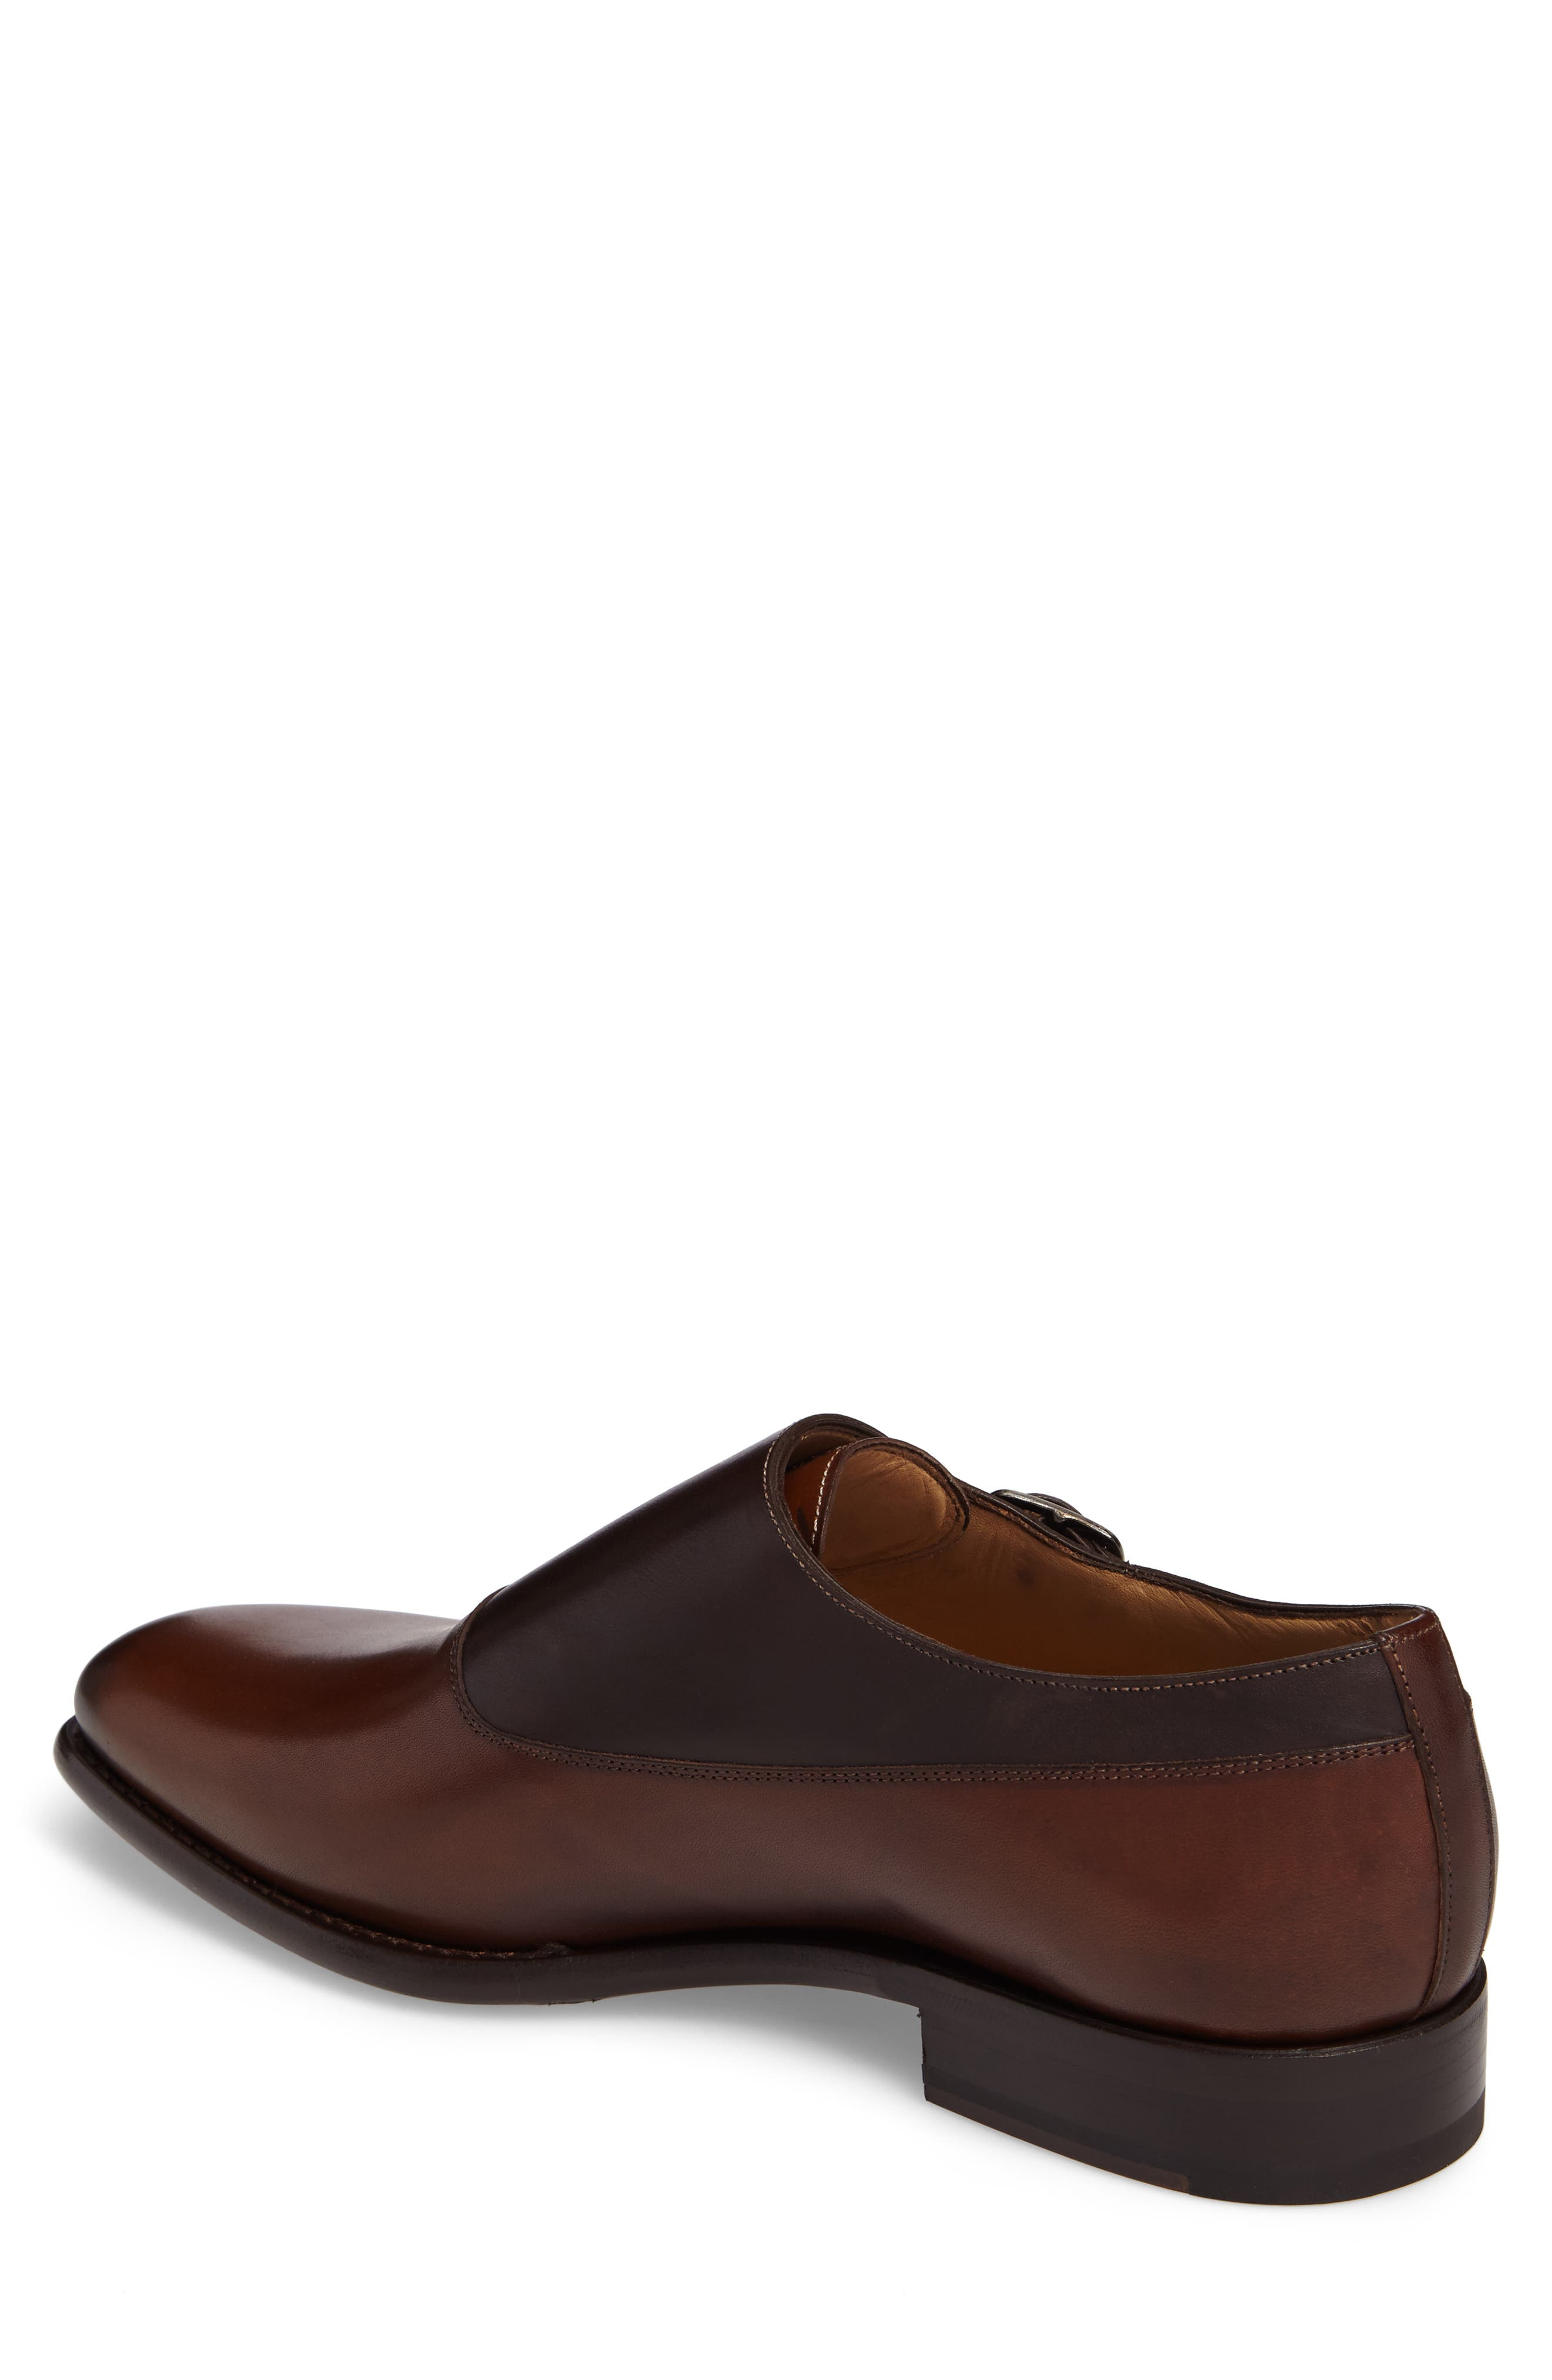 Alternate Image 2  - Mezlan Algar Monk Strap Shoe (Men)